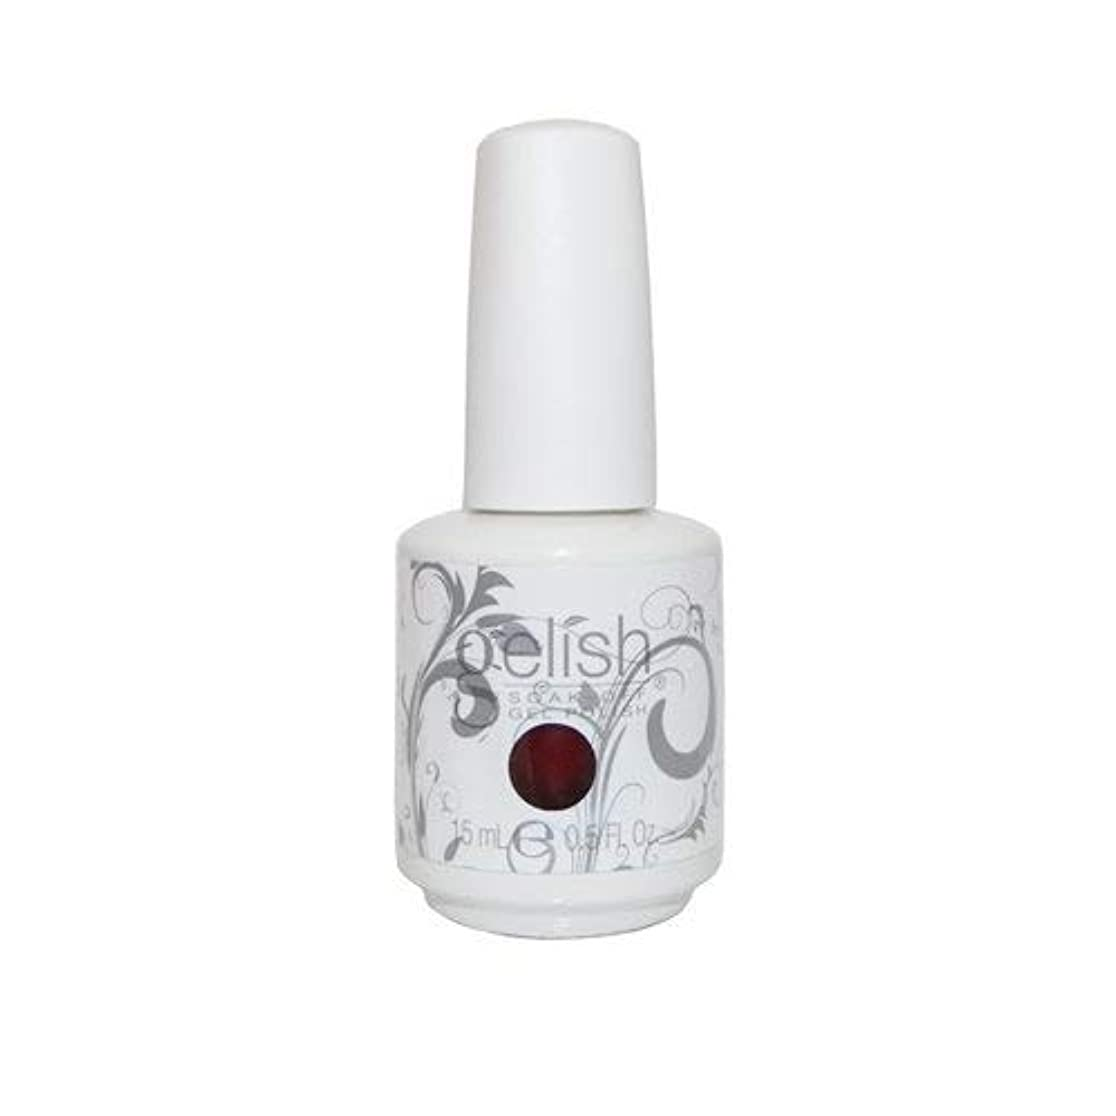 文ふざけたイディオムHarmony Gelish Gel Polish - What's Your Poinsettia? - 0.5oz / 15ml